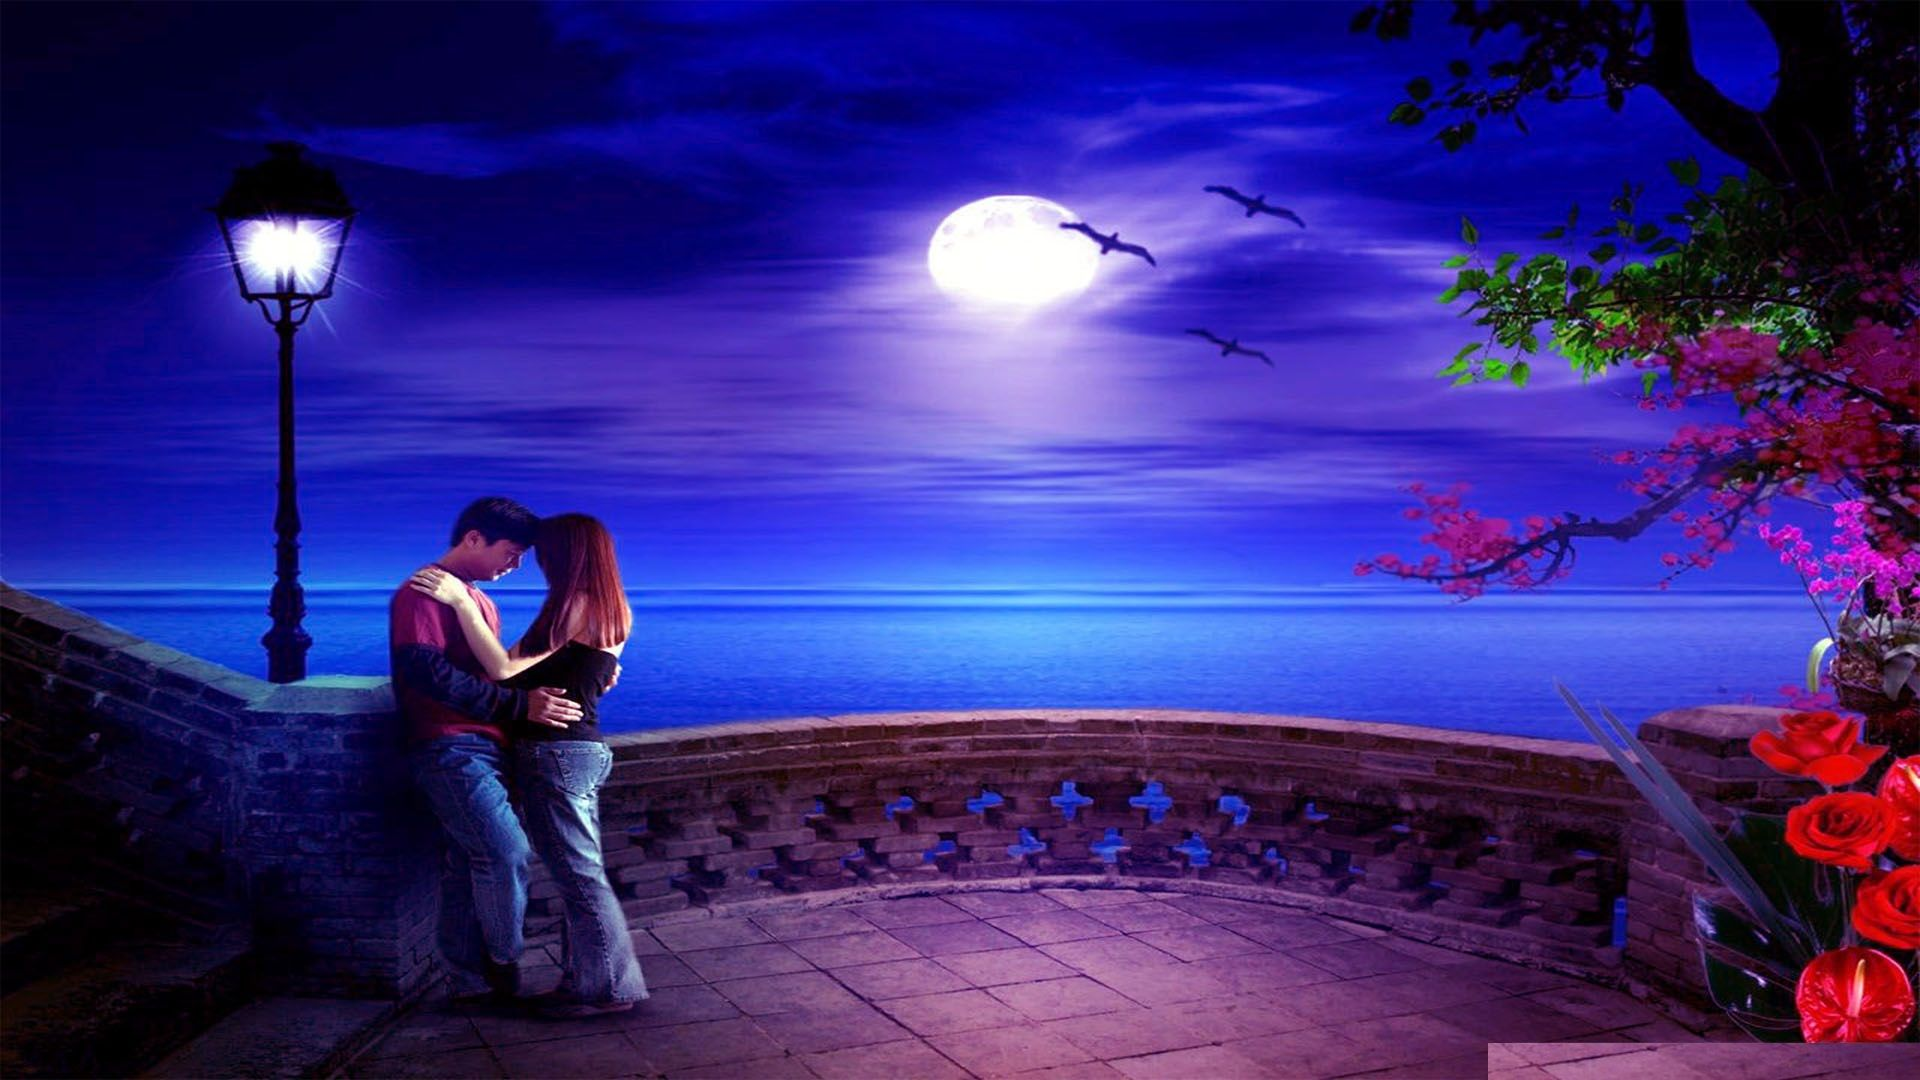 Love Wallpaper In Romantic : Romantic Love HD Wallpapers : Find best latest Romantic Love HD Wallpapers for your Pc desktop ...